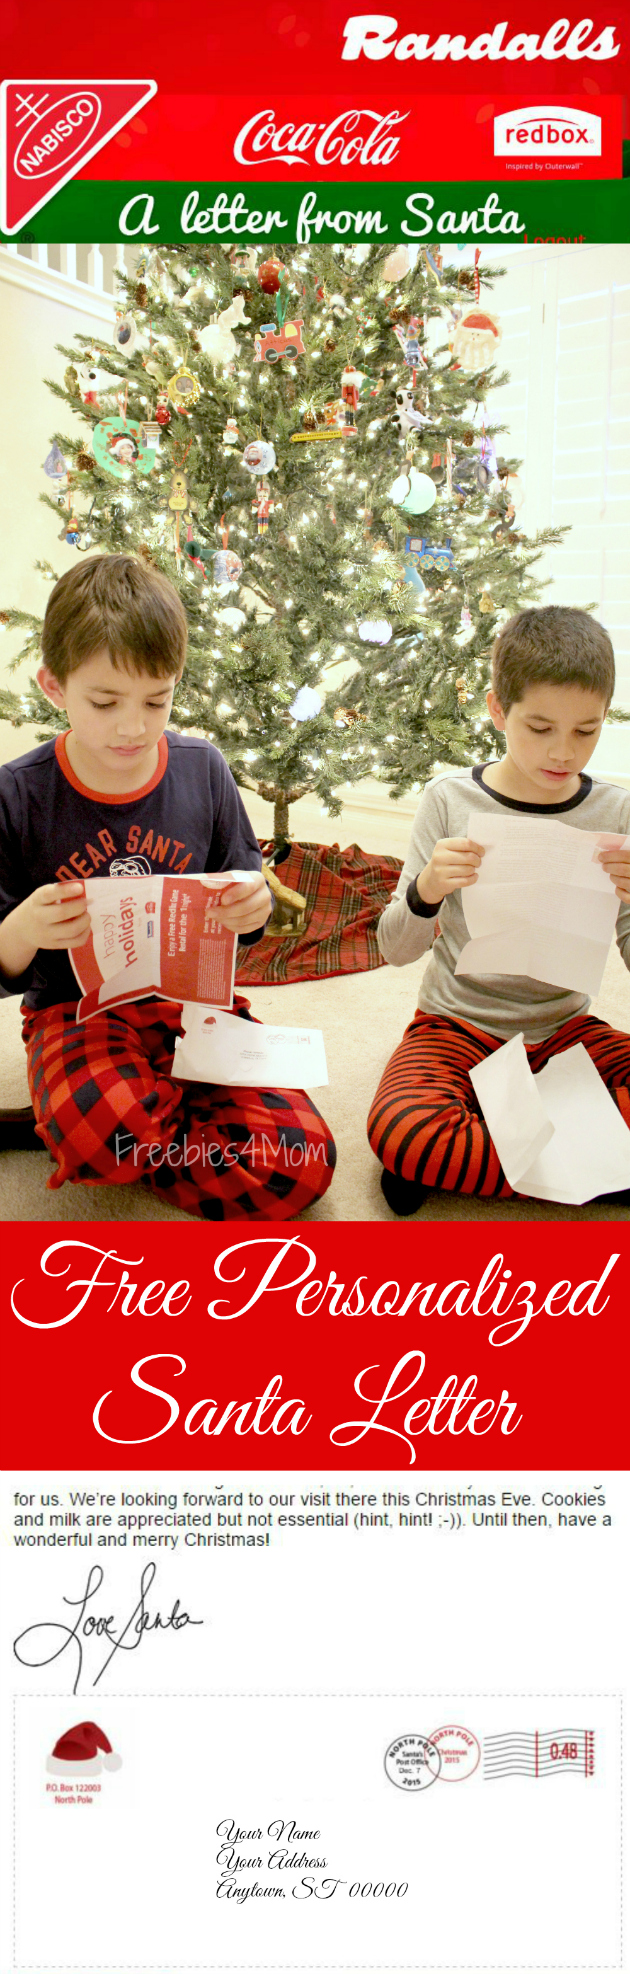 Free Personalized Letter From Santa With Envelope